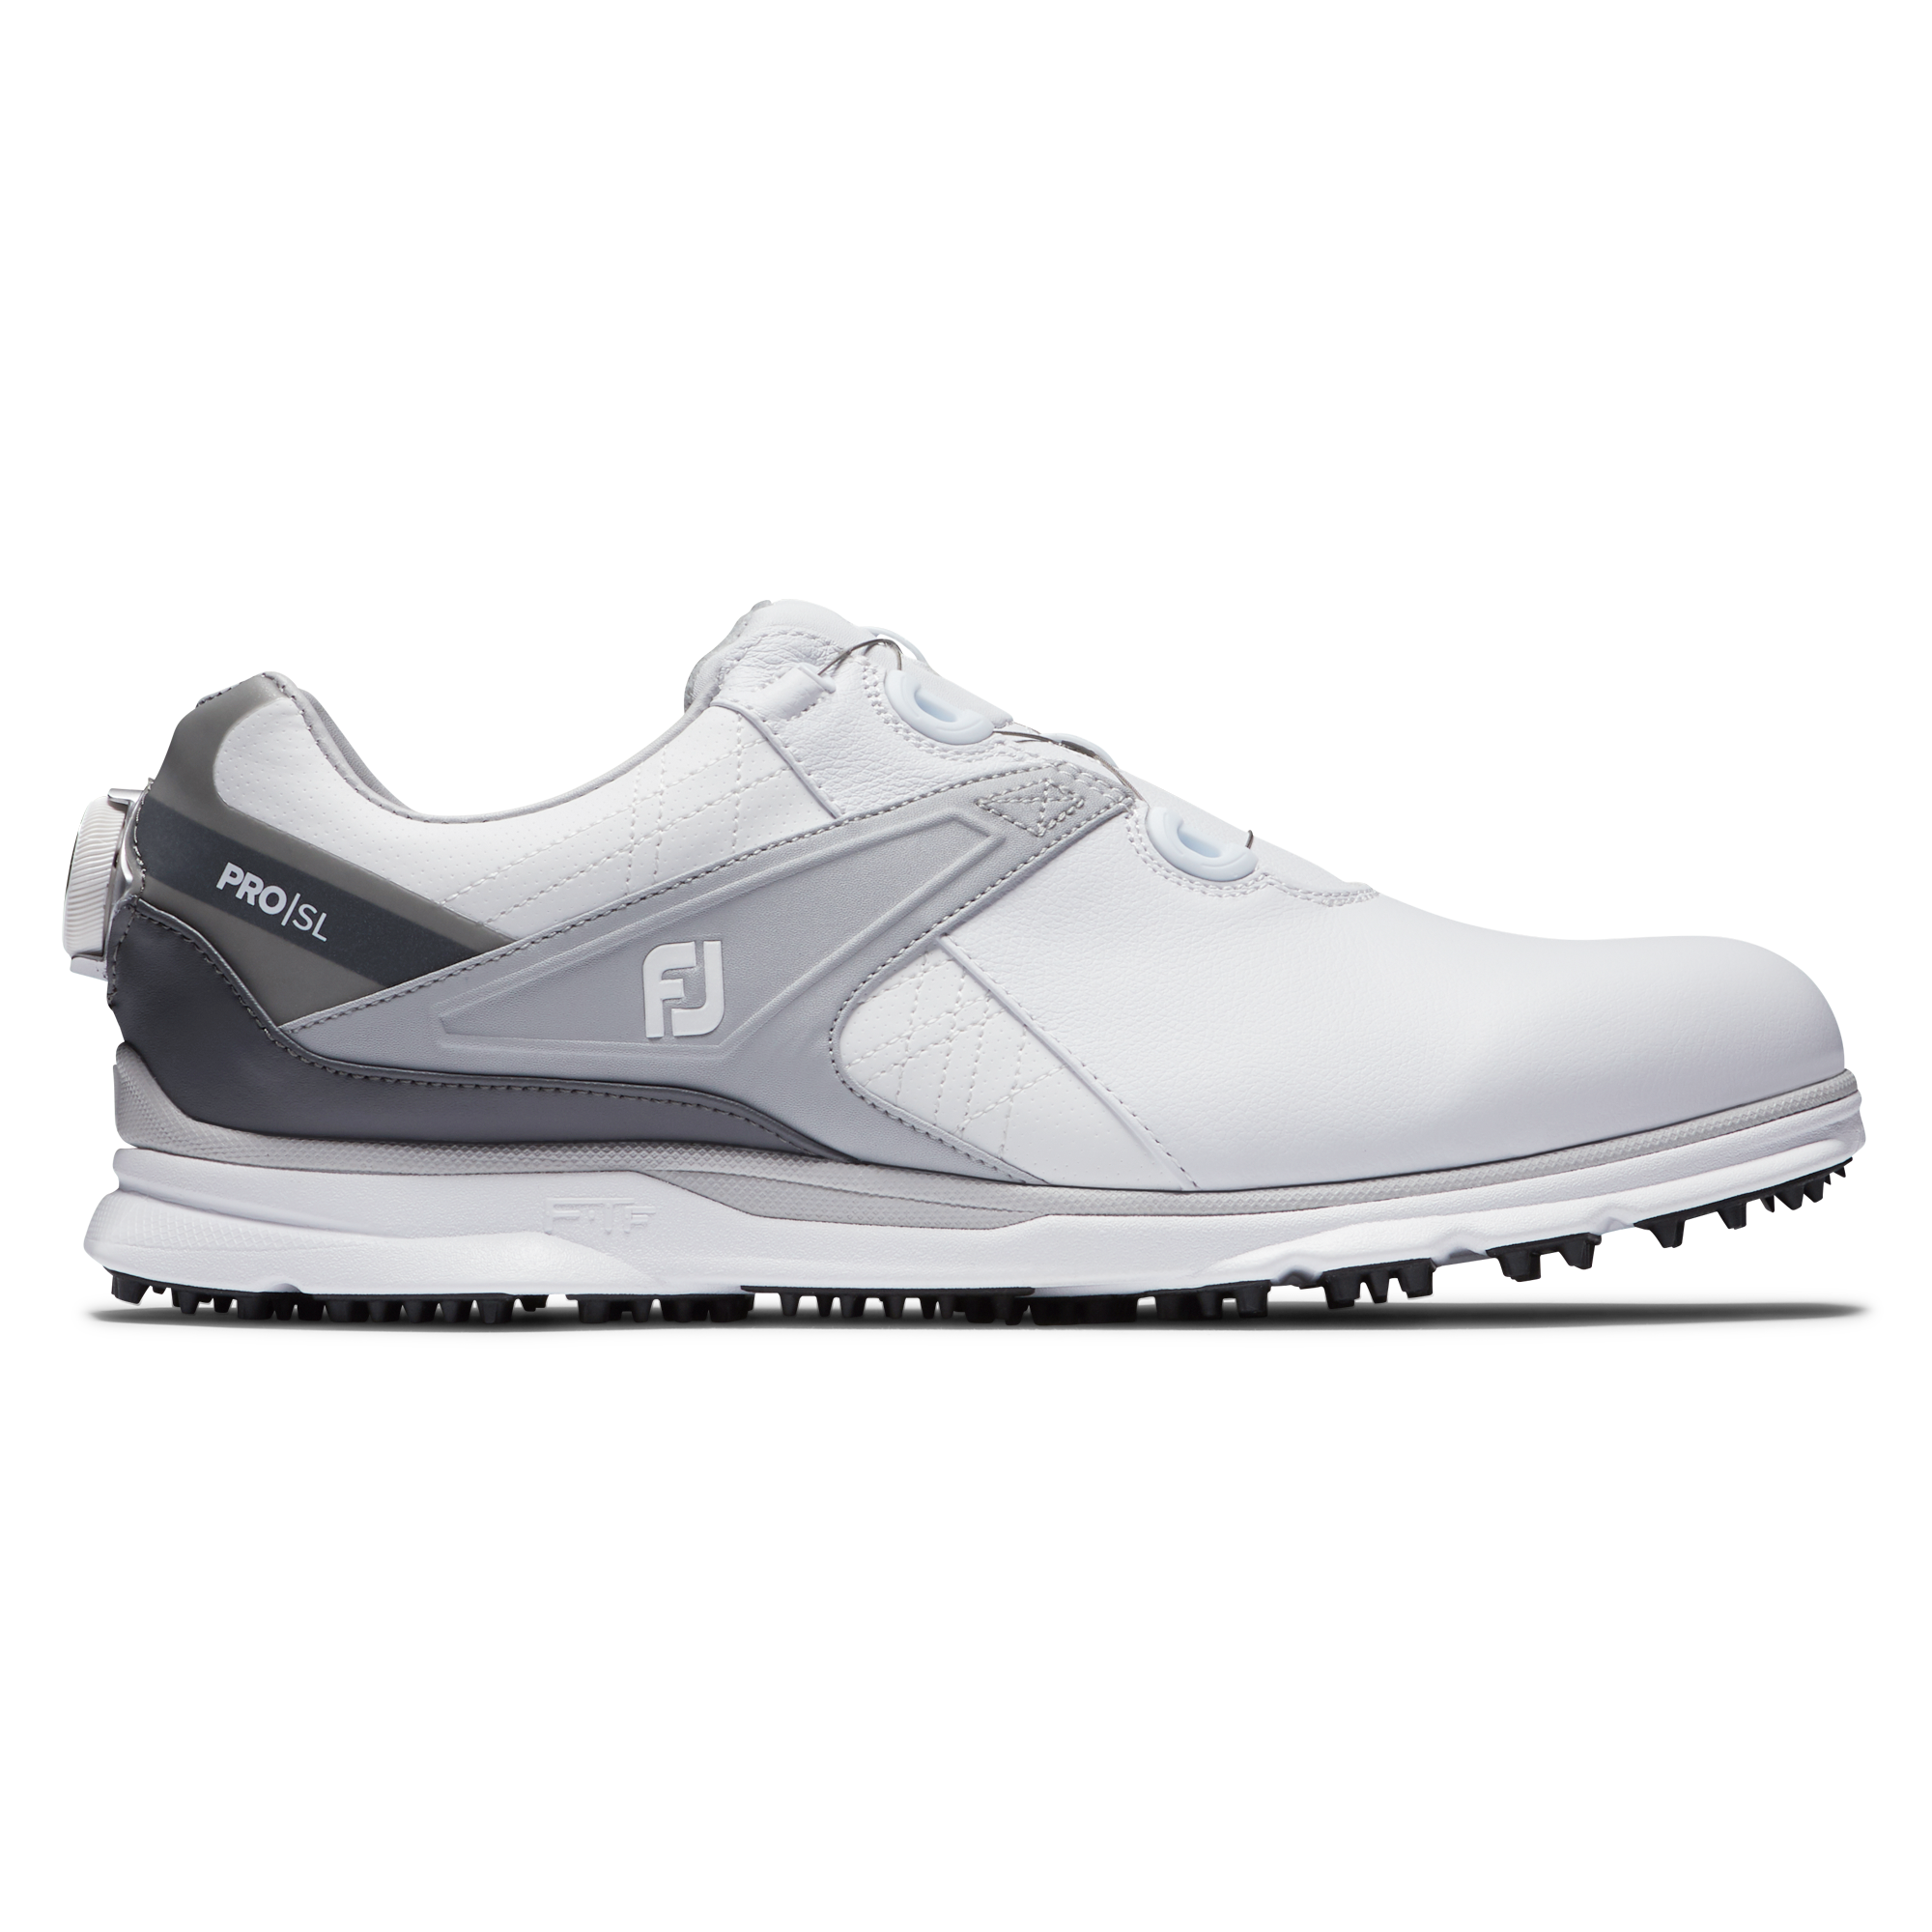 Men's Golf Shoes | The #1 Shoe in Golf